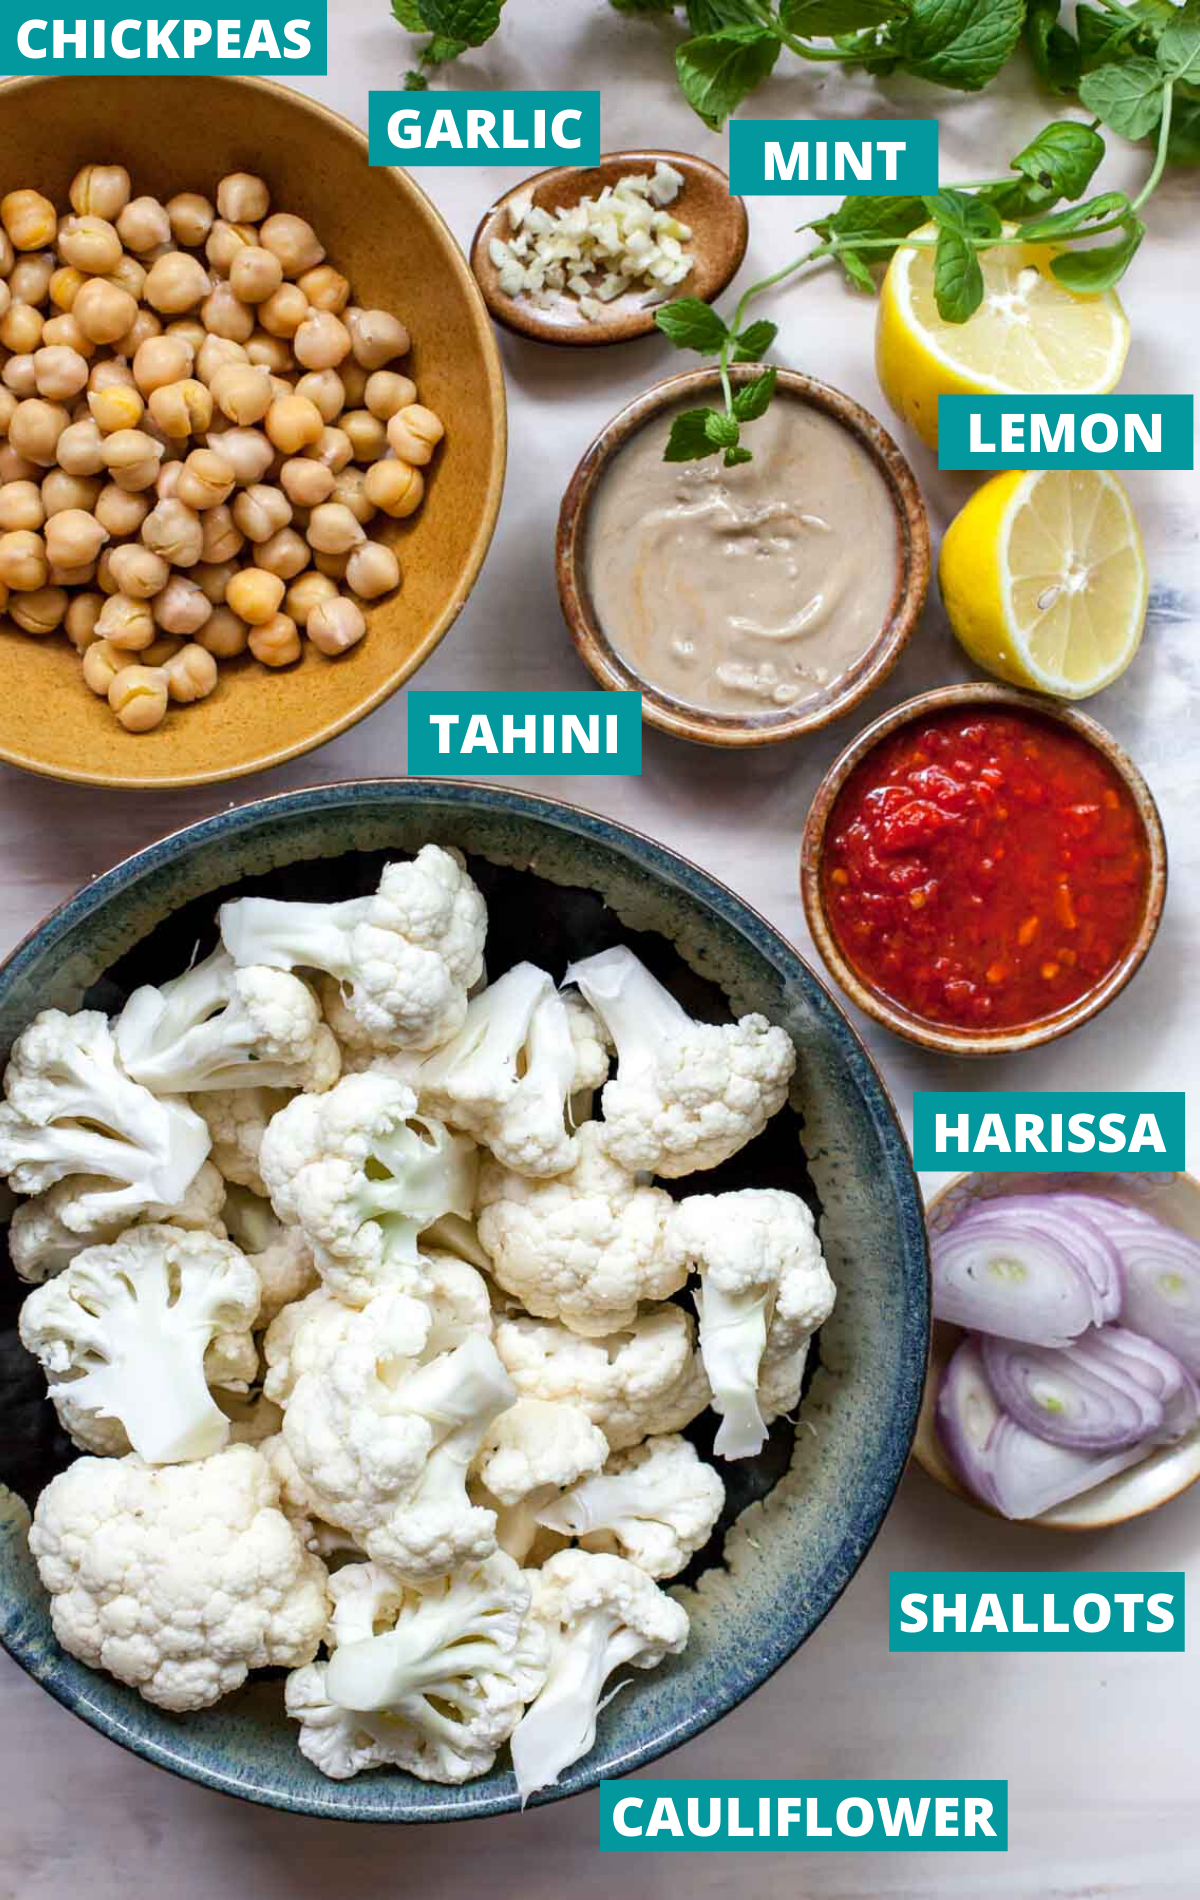 Cauliflower florets, chickpeas, tahini, harissa, and tahini in separate bowls with ingredient label tags